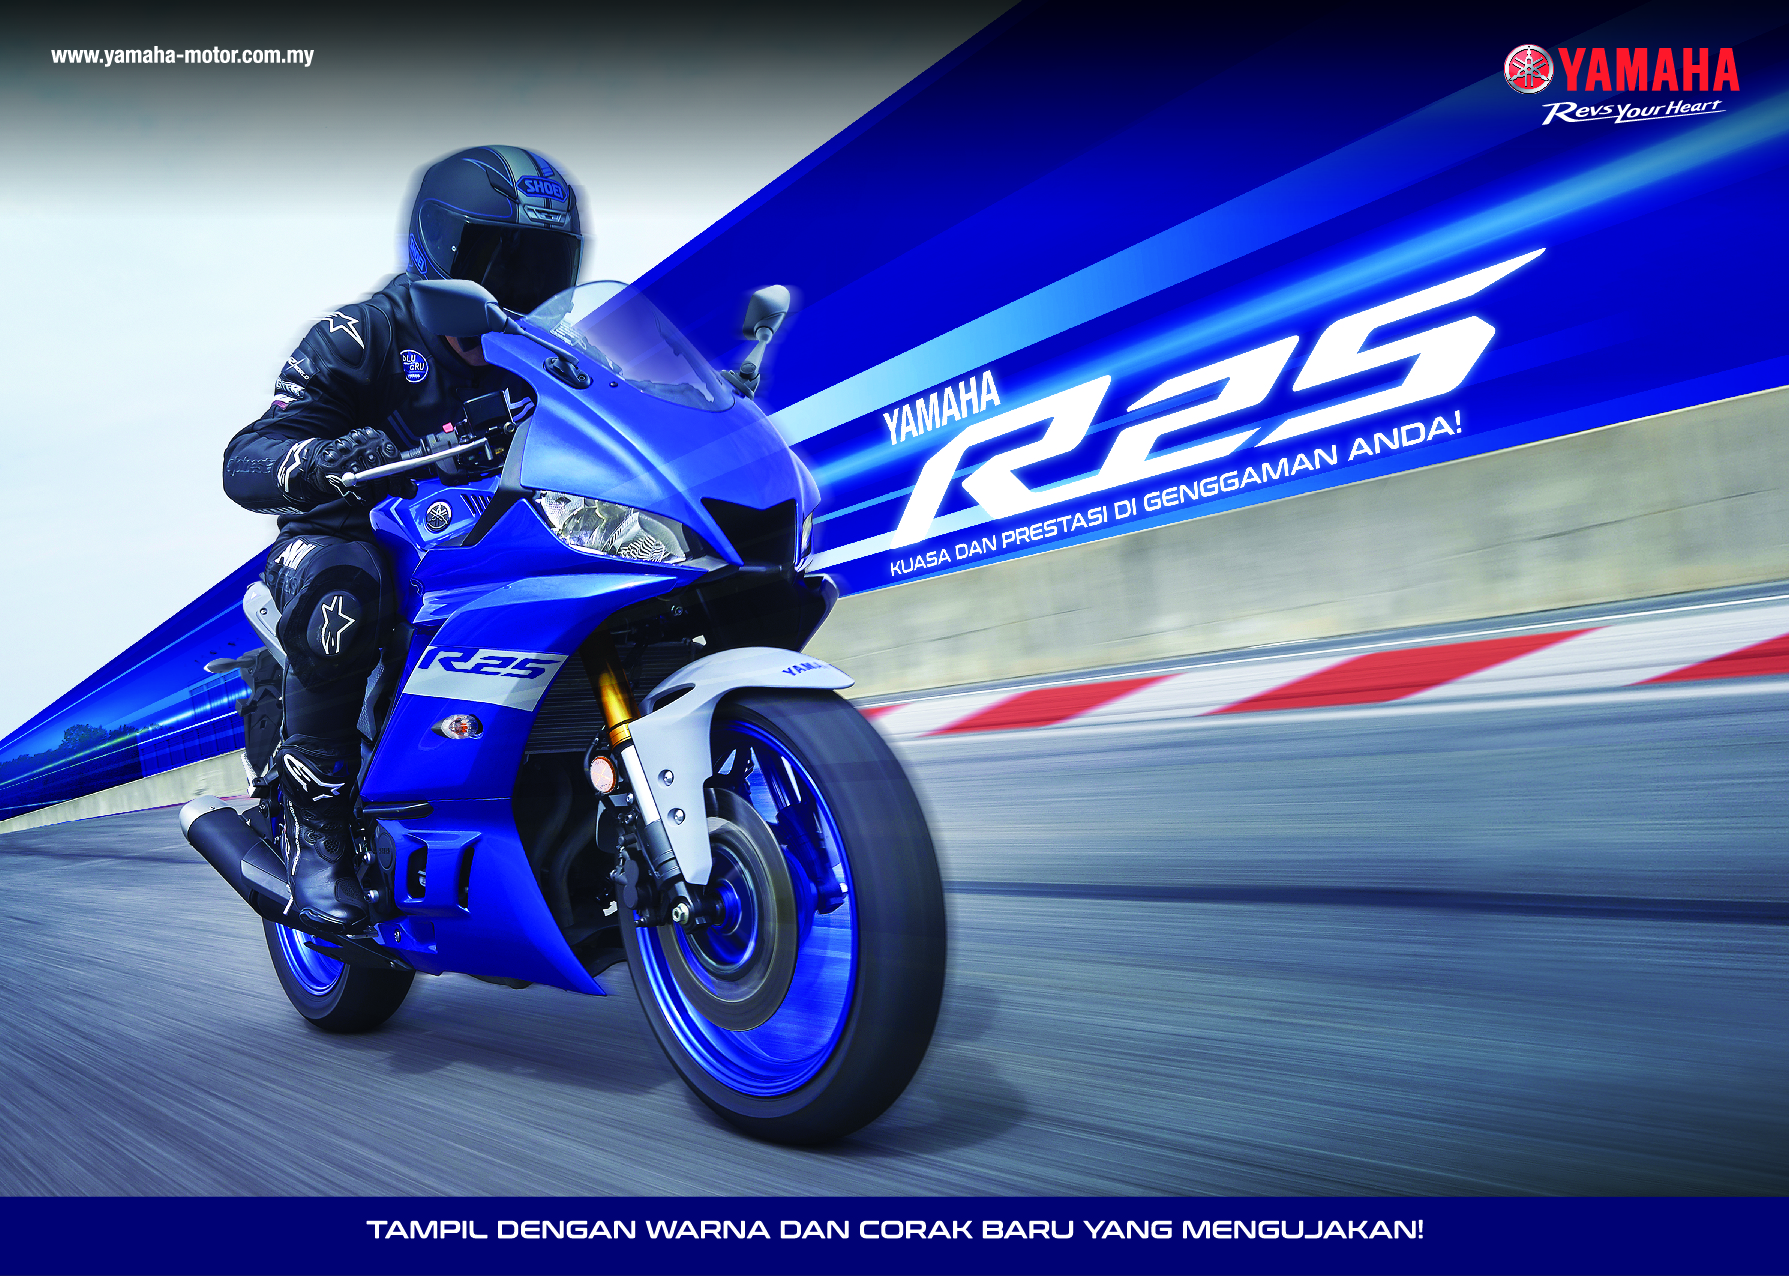 2020 YAMAHA YZF-R25 Launched With A Price Of RM19,998